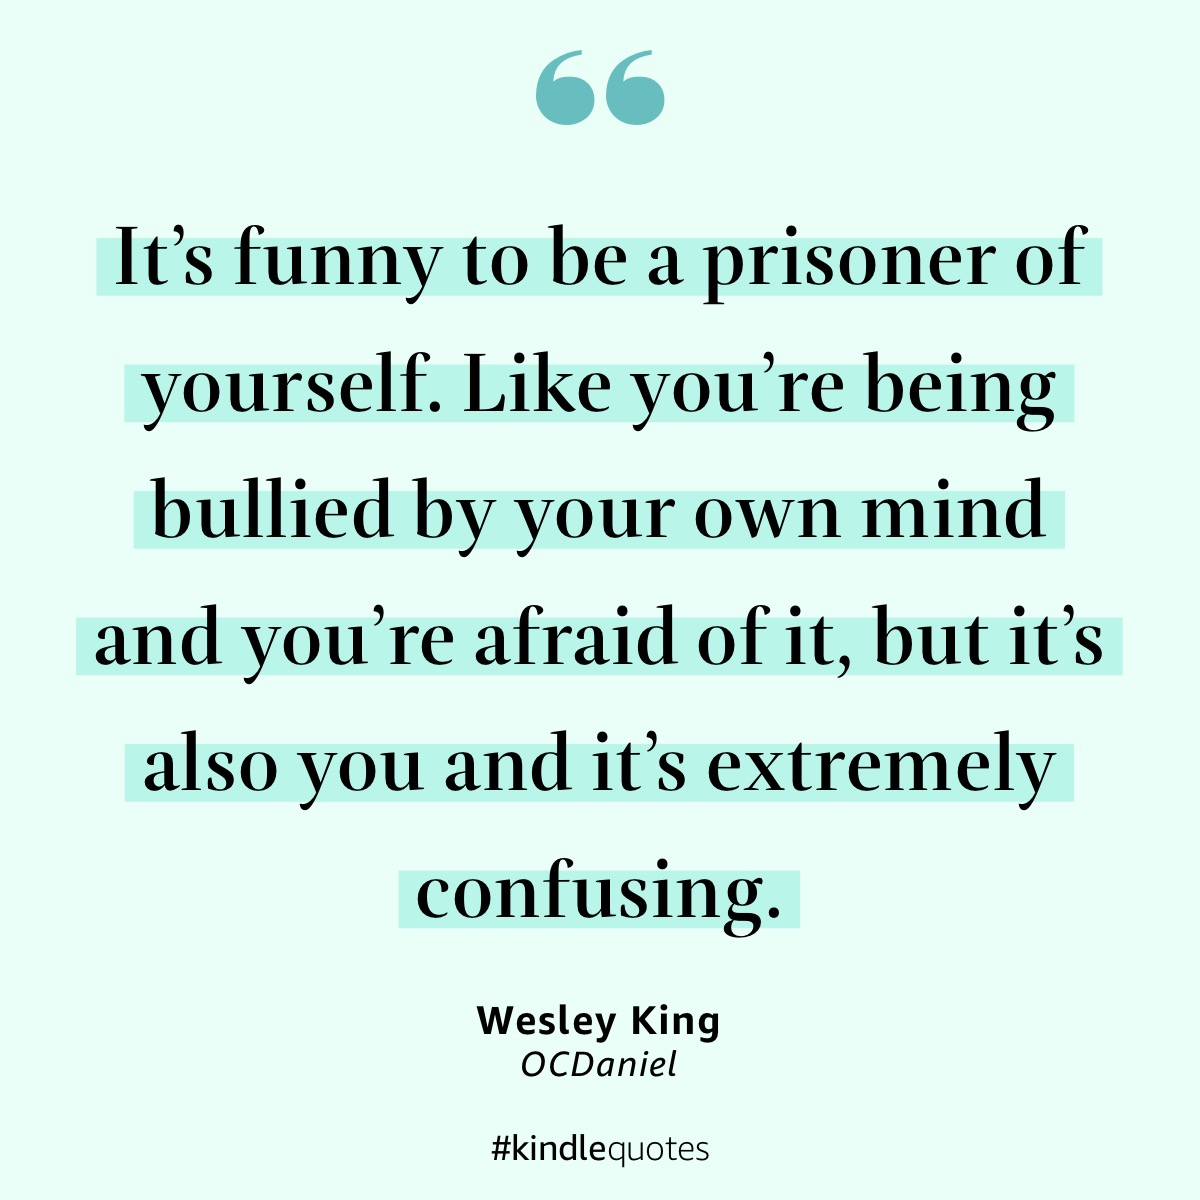 """It's funny to be a prisoner of yourself. Like you're being bullied by your own mind and you're afraid of it, but it's also you and it's extremely confusing."" - Wesley King, OCDaniel"